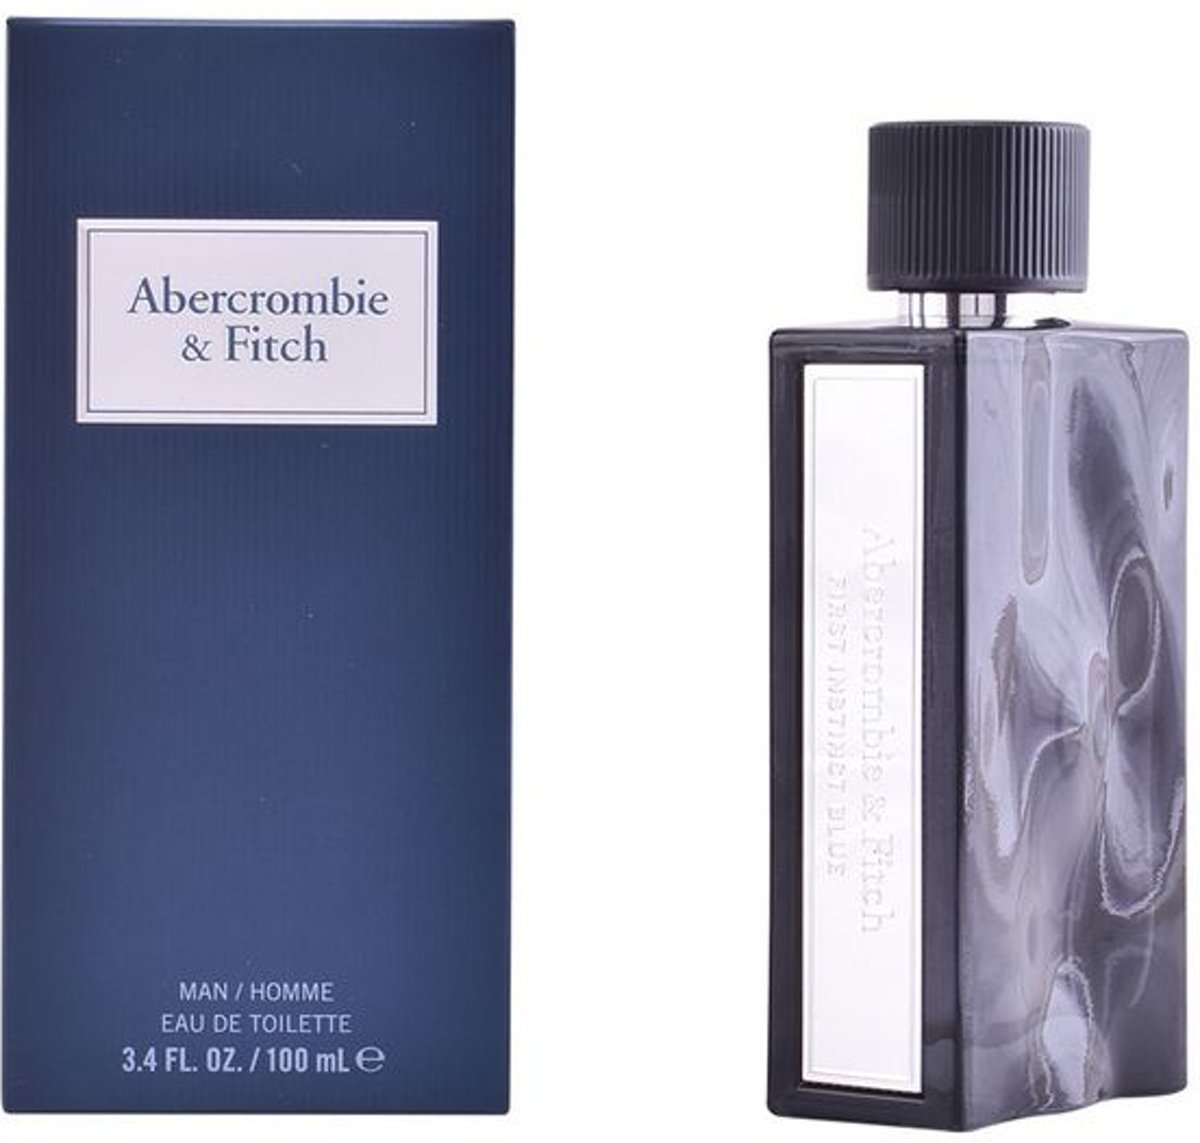 Abercrombie & Fitch Abercrombie & Fitch - Eau de toilette - Fitch First Instinct Blue Man - 100 ml